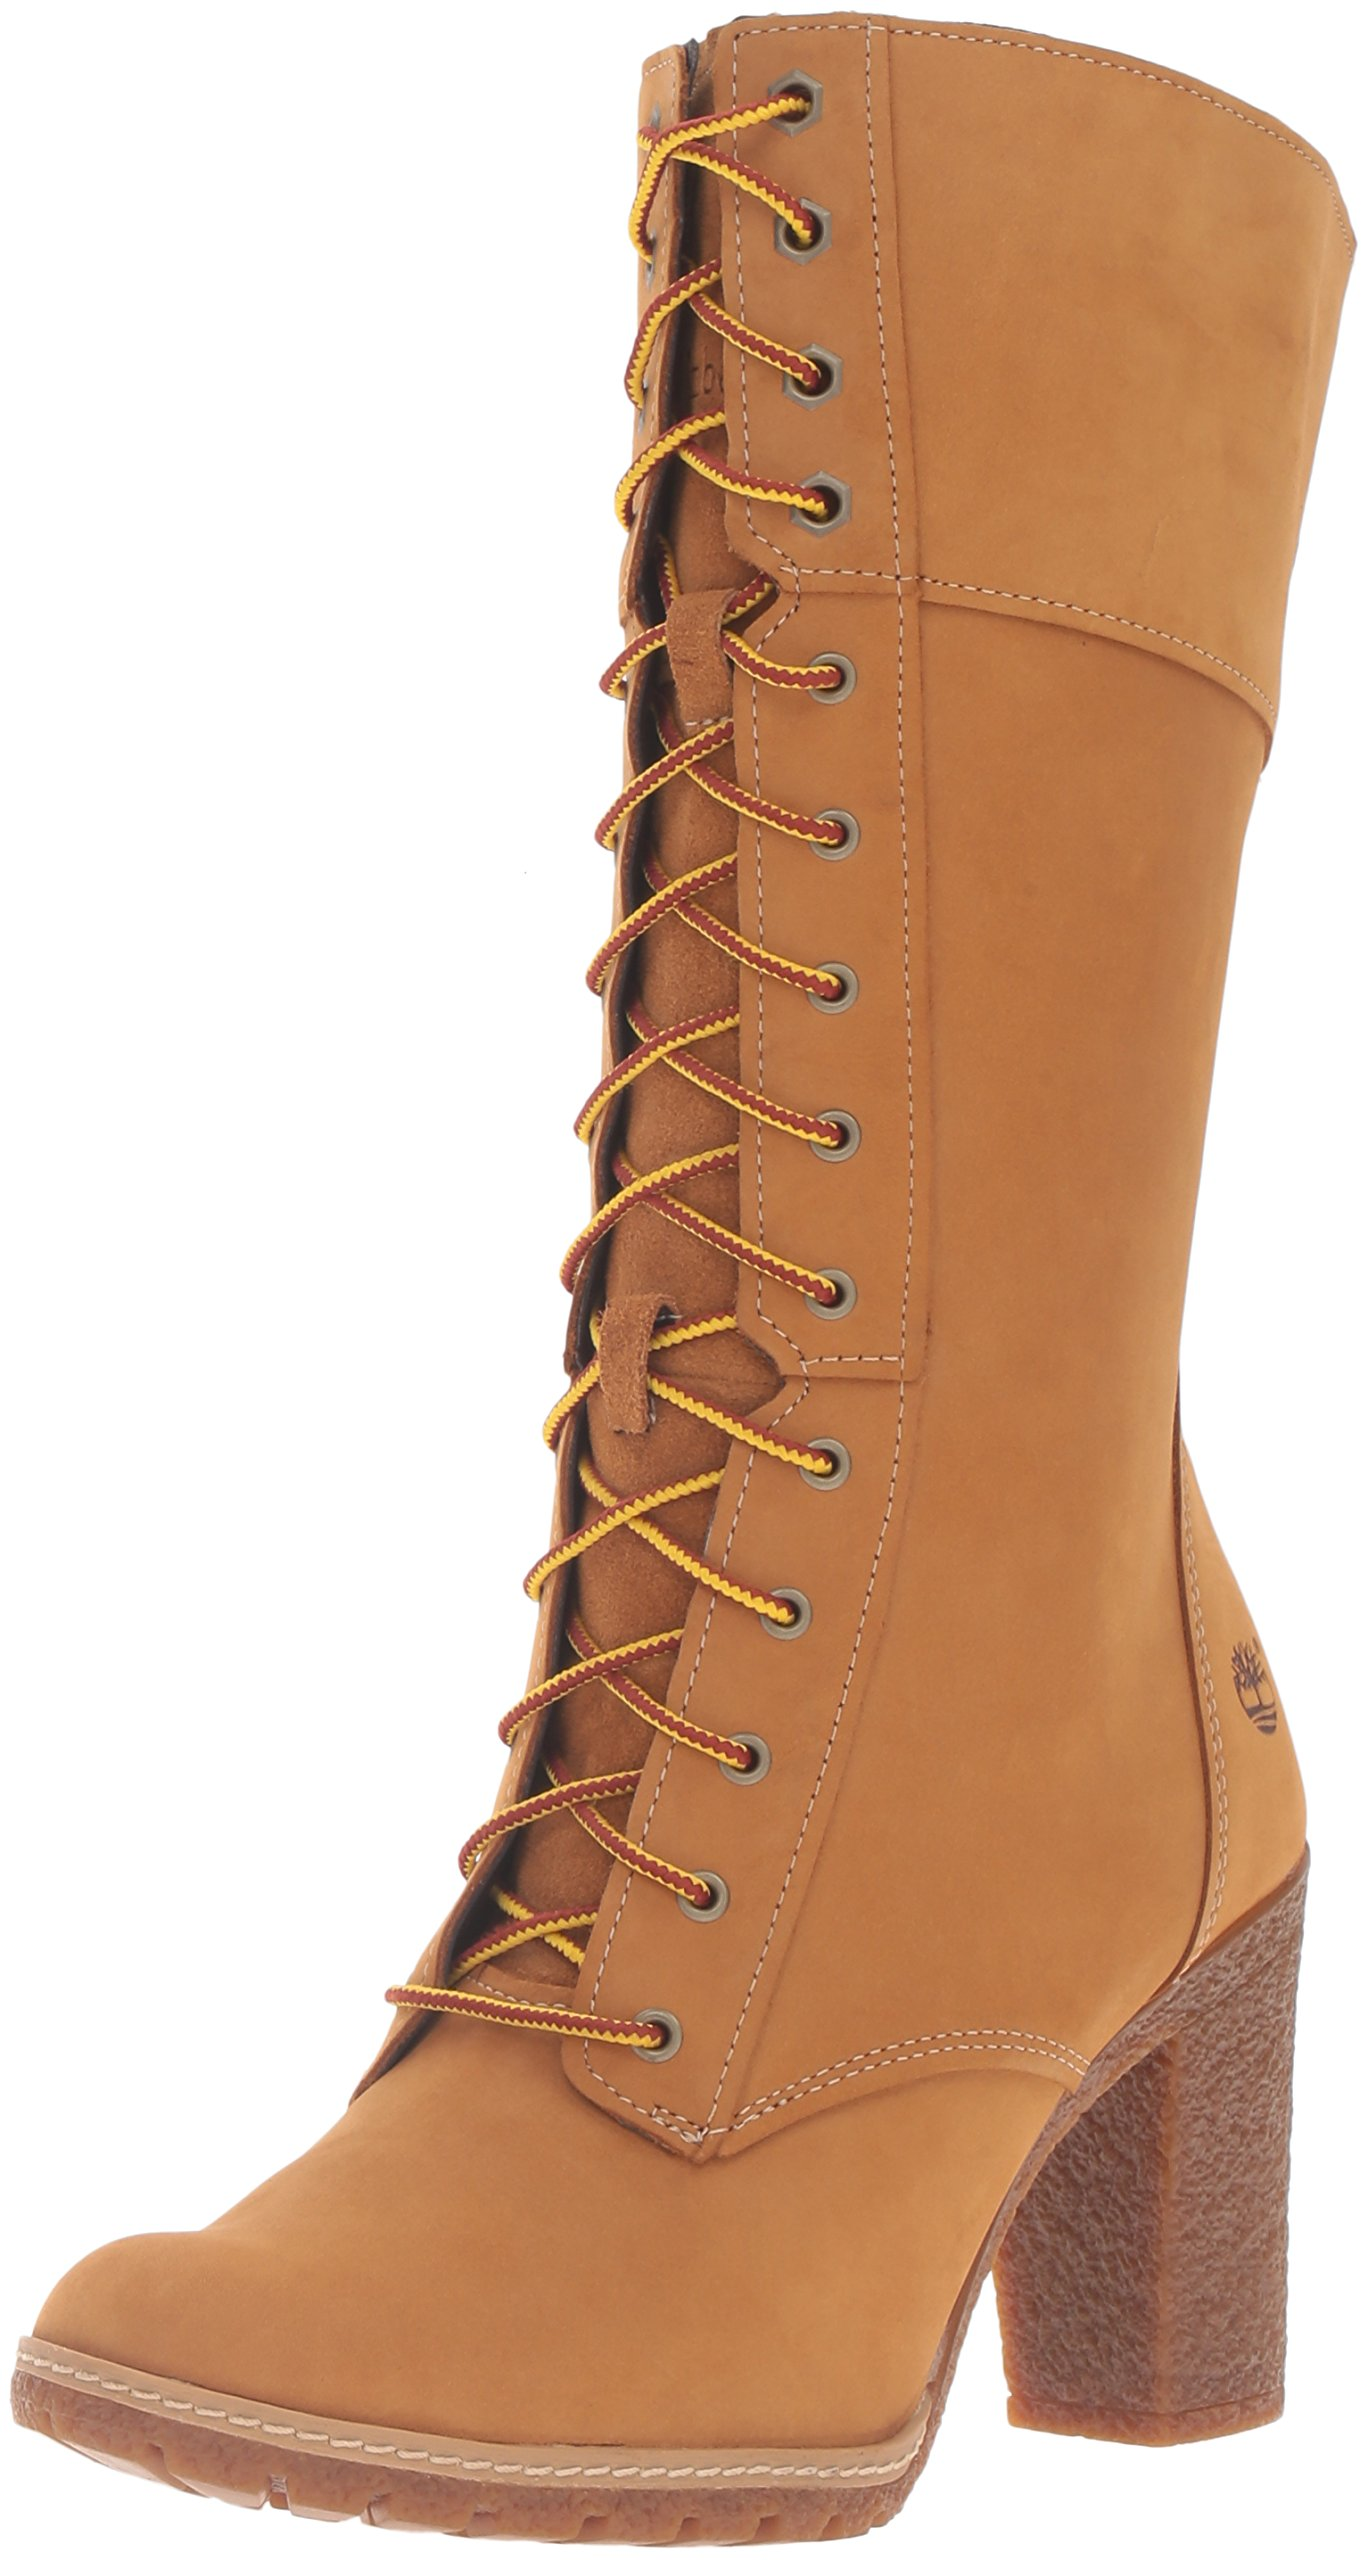 Timberland Women's Glancy 10 Inch Lace Up Boot, Wheat Nubuck, 8 M US